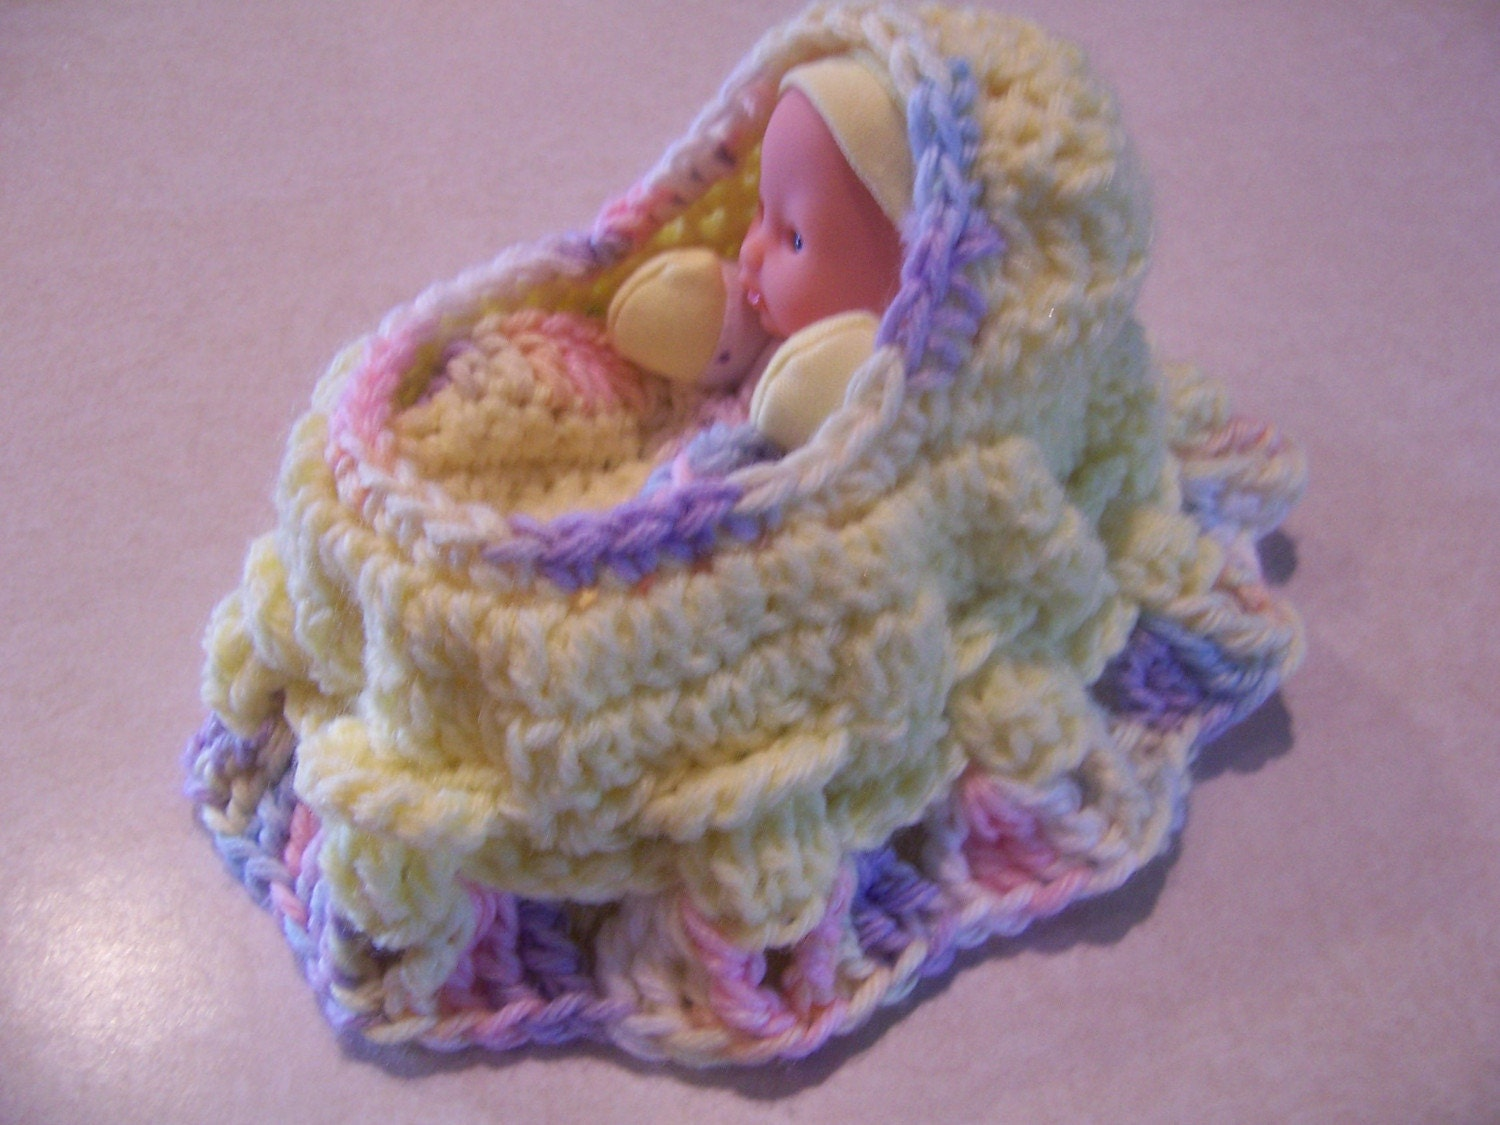 Crochet Bag Pattern Cotton : Crocheted Cradle Purse with Doll and Blanket Yellow